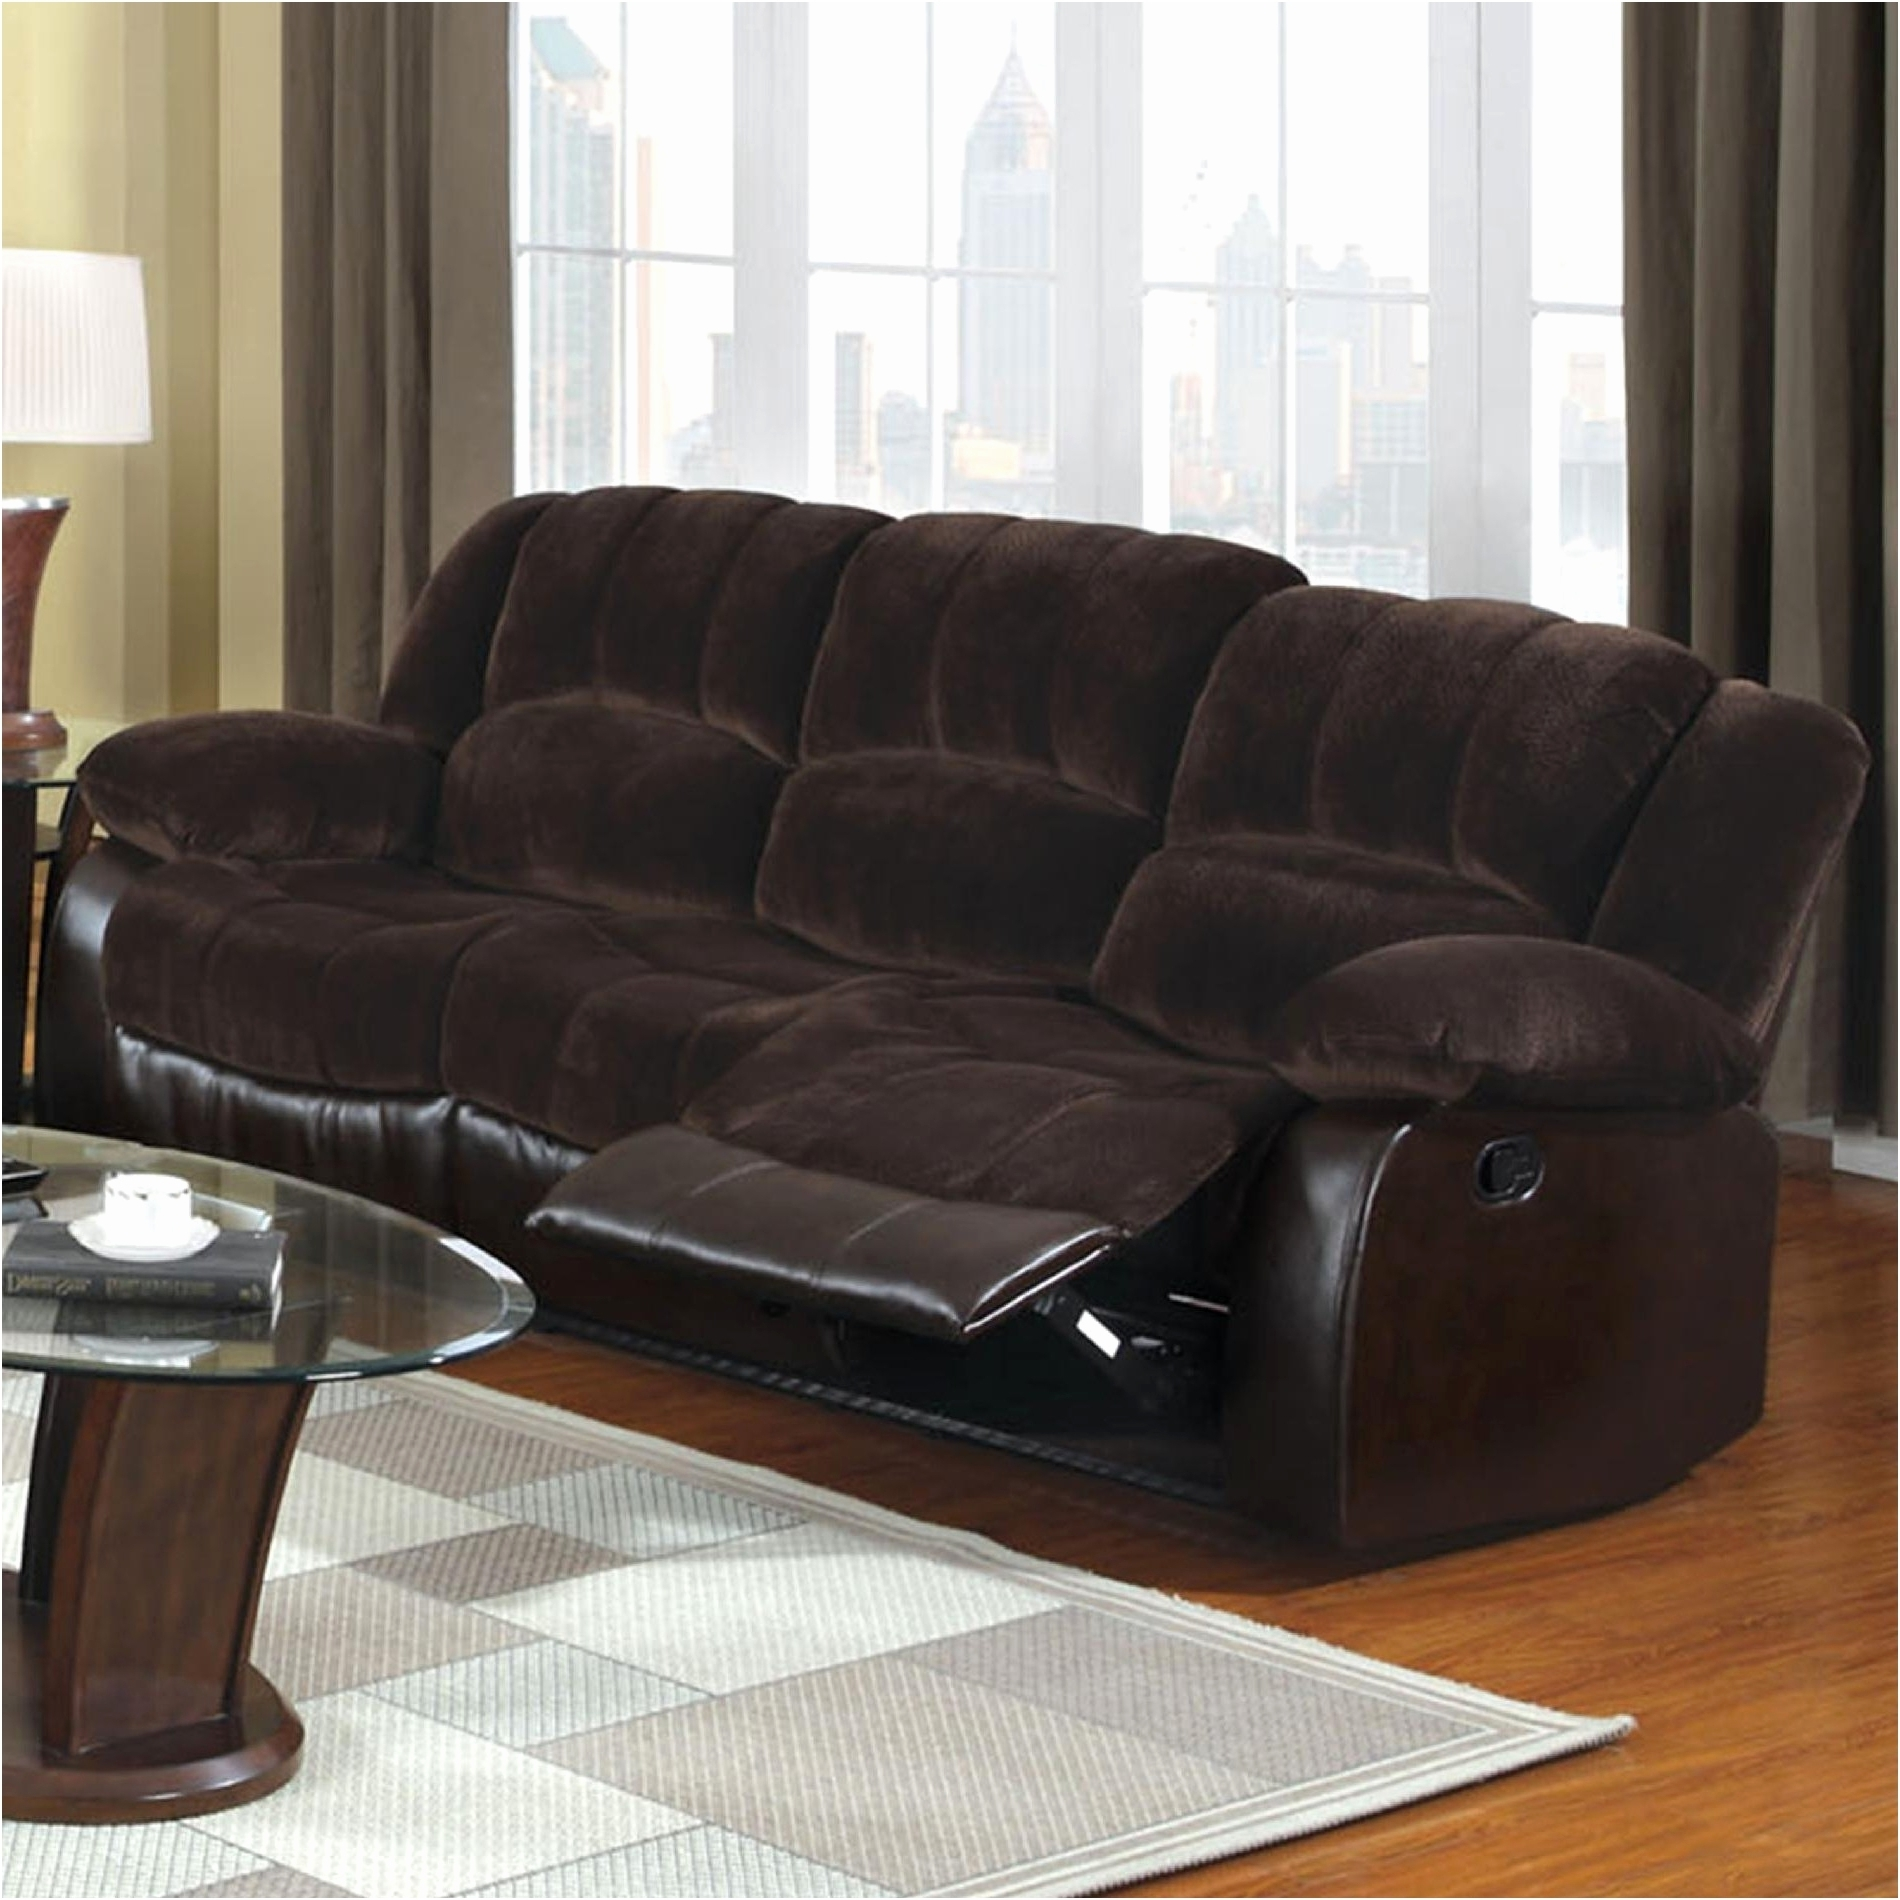 Favorite Fresh Sears Leather Sofa New – Intuisiblog In Sectional Sofas At Sears (View 5 of 15)